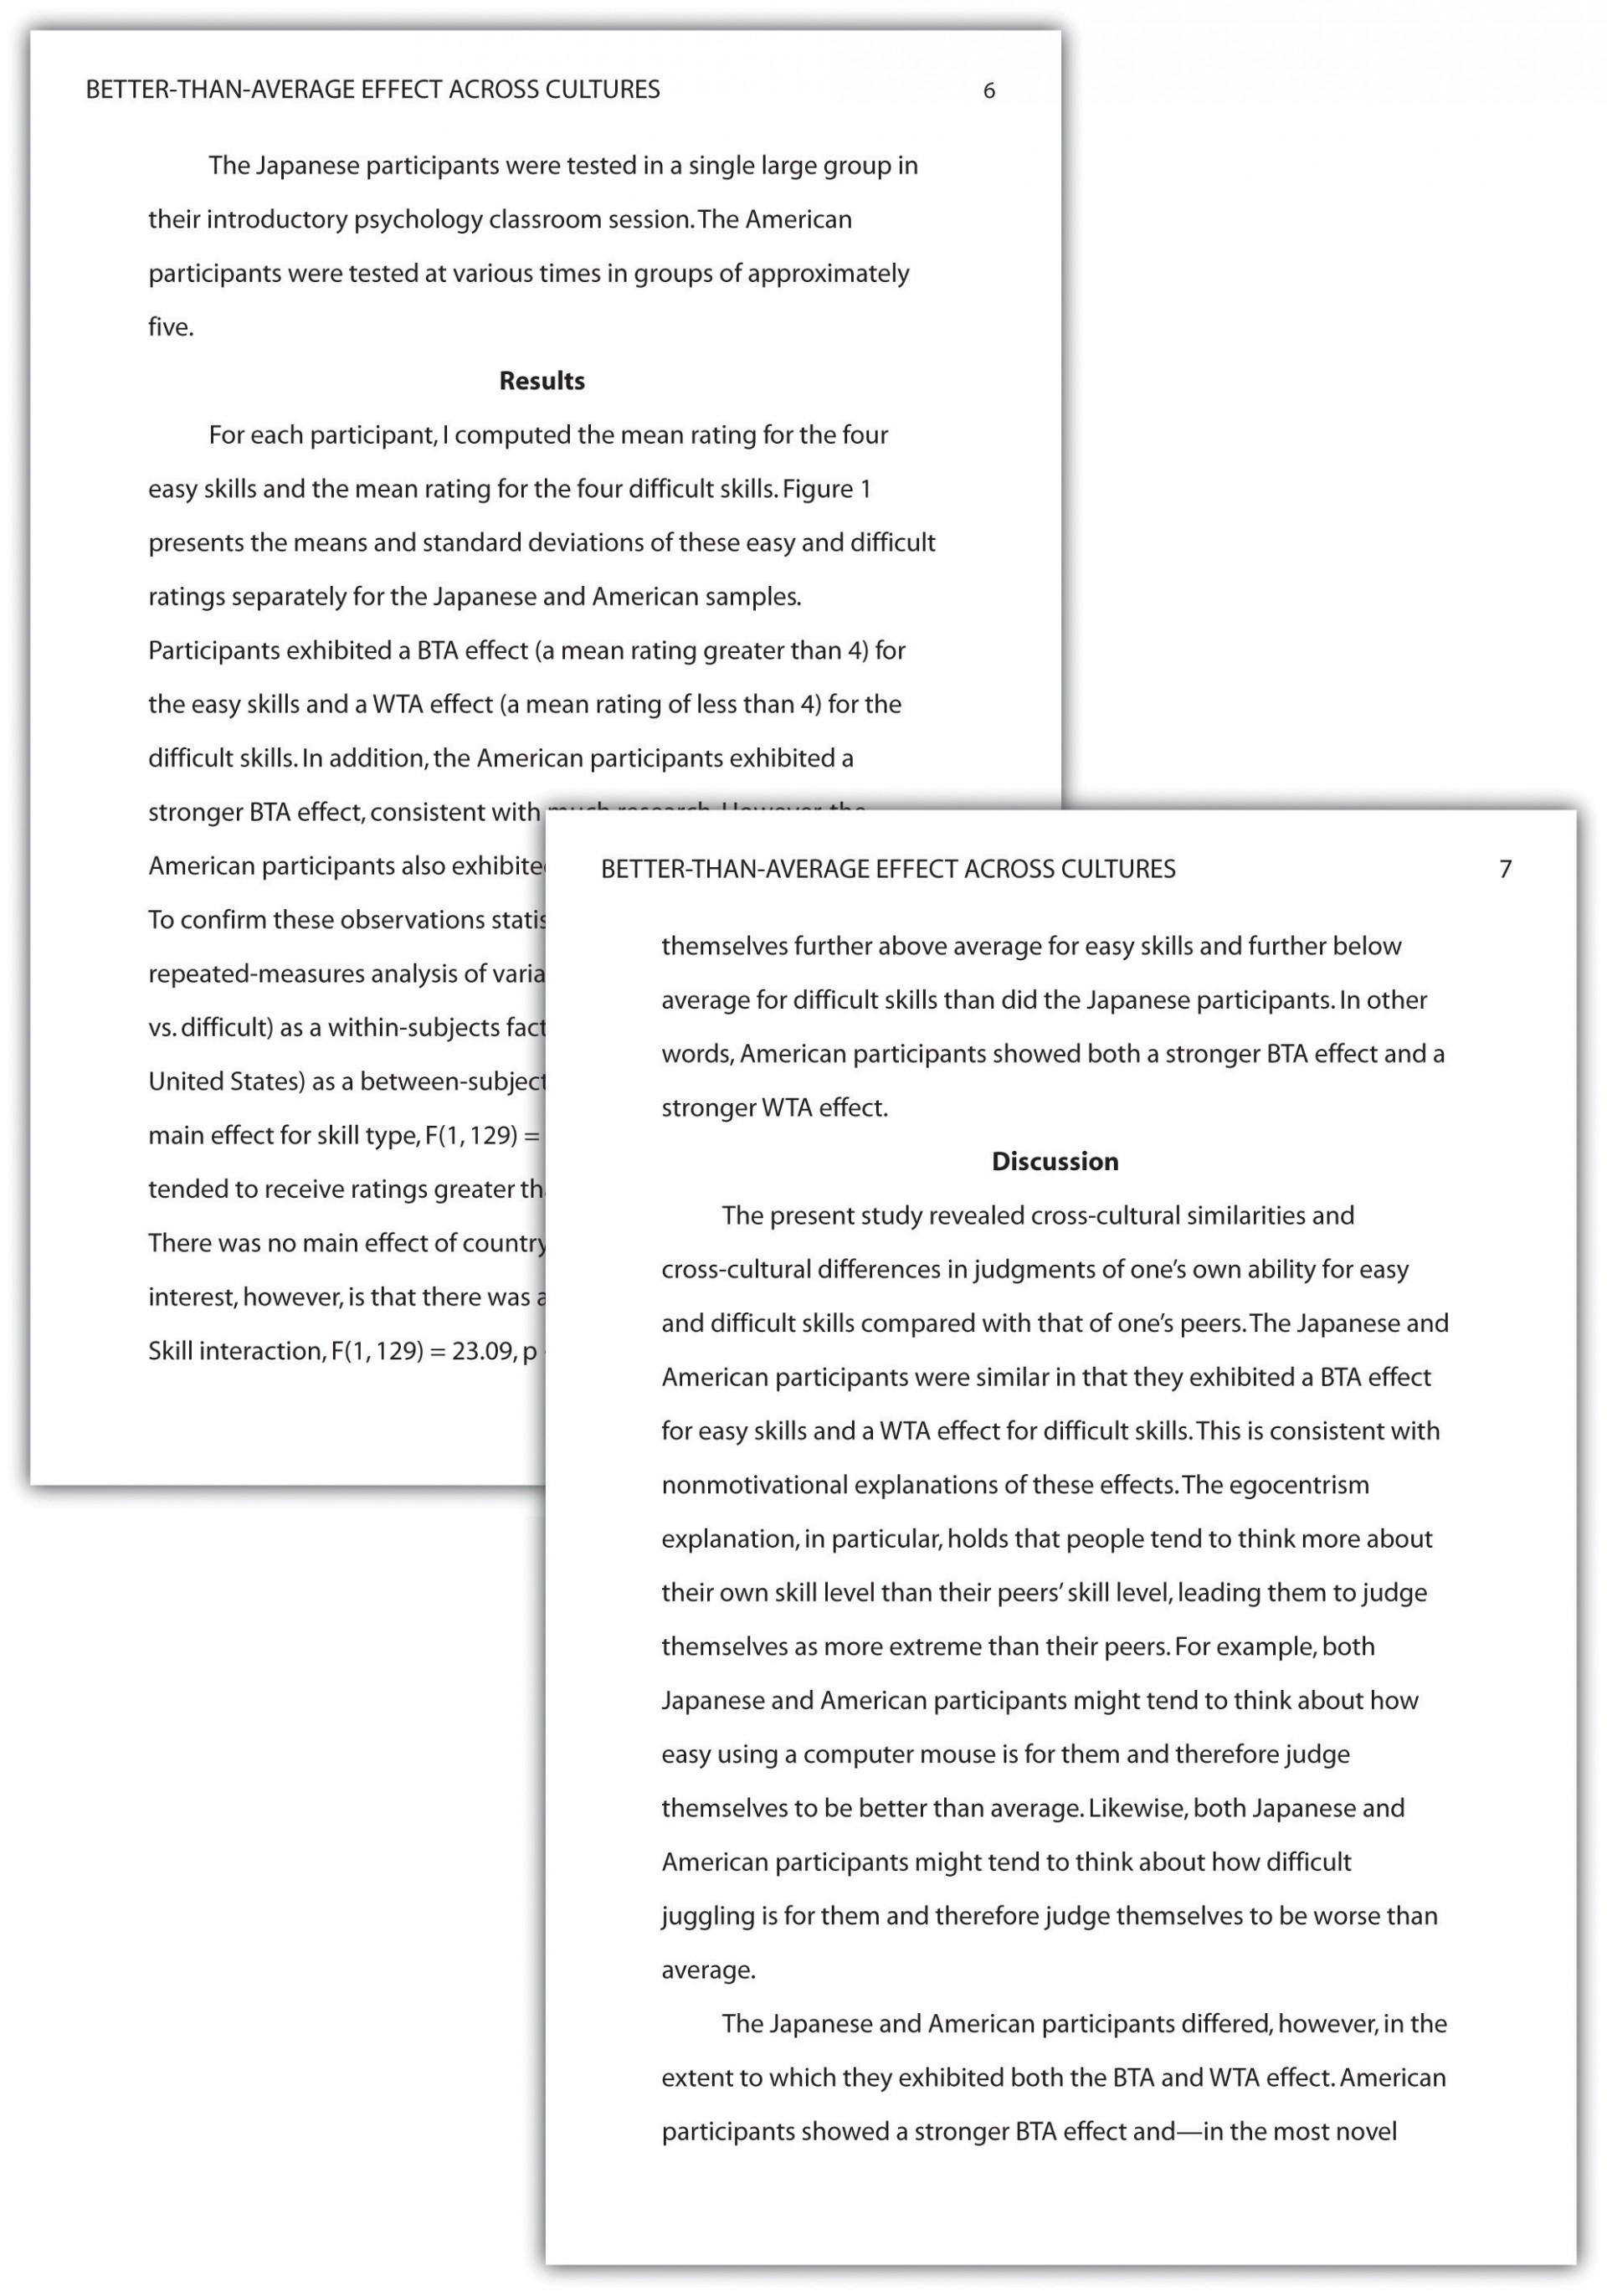 020 Essay Example Apa Format Shocking Sample Paper Template Short Doc 1920